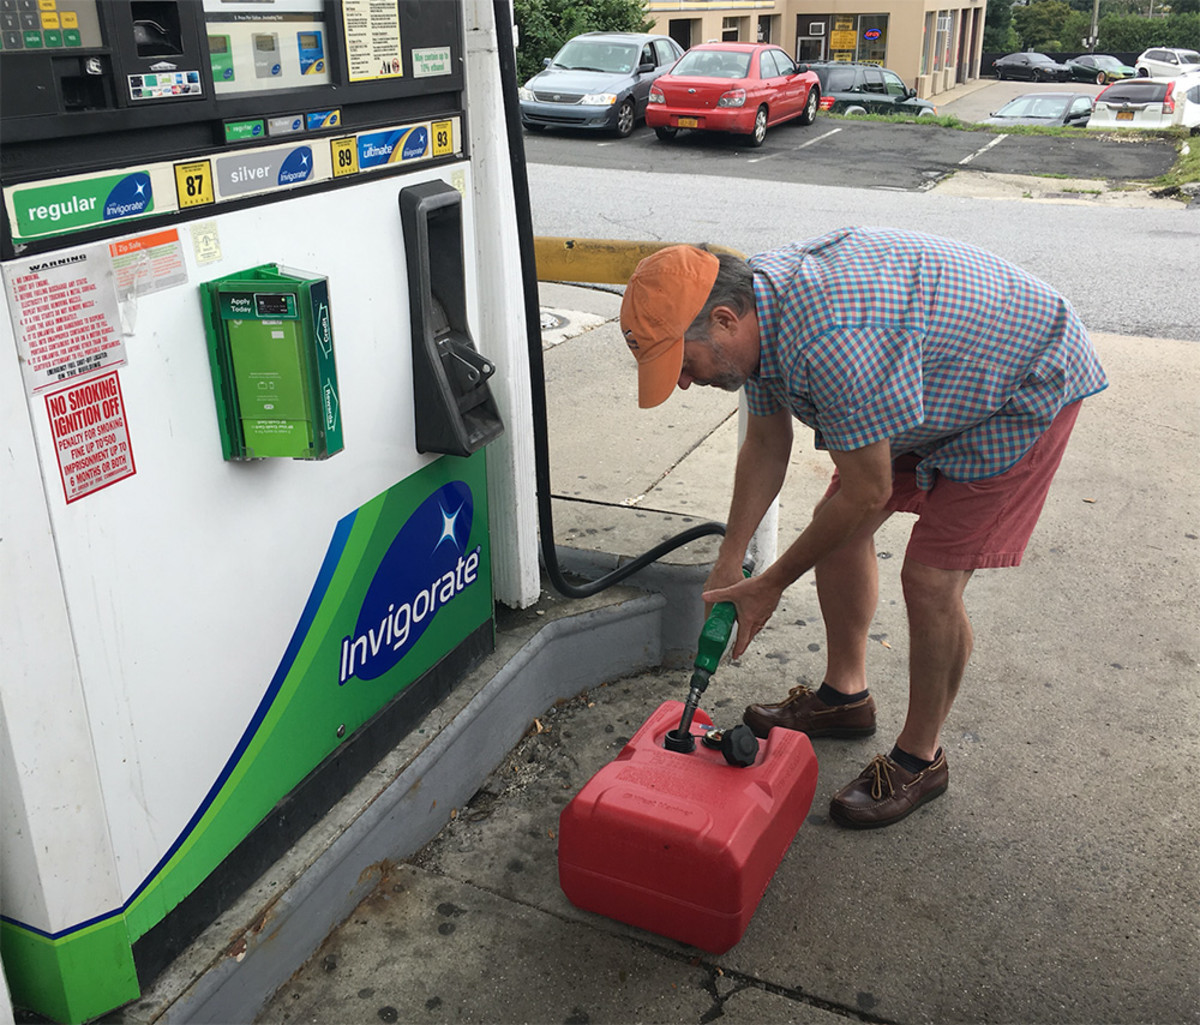 More than half of the boaters surveyed said they fill up at roadside gas stations.